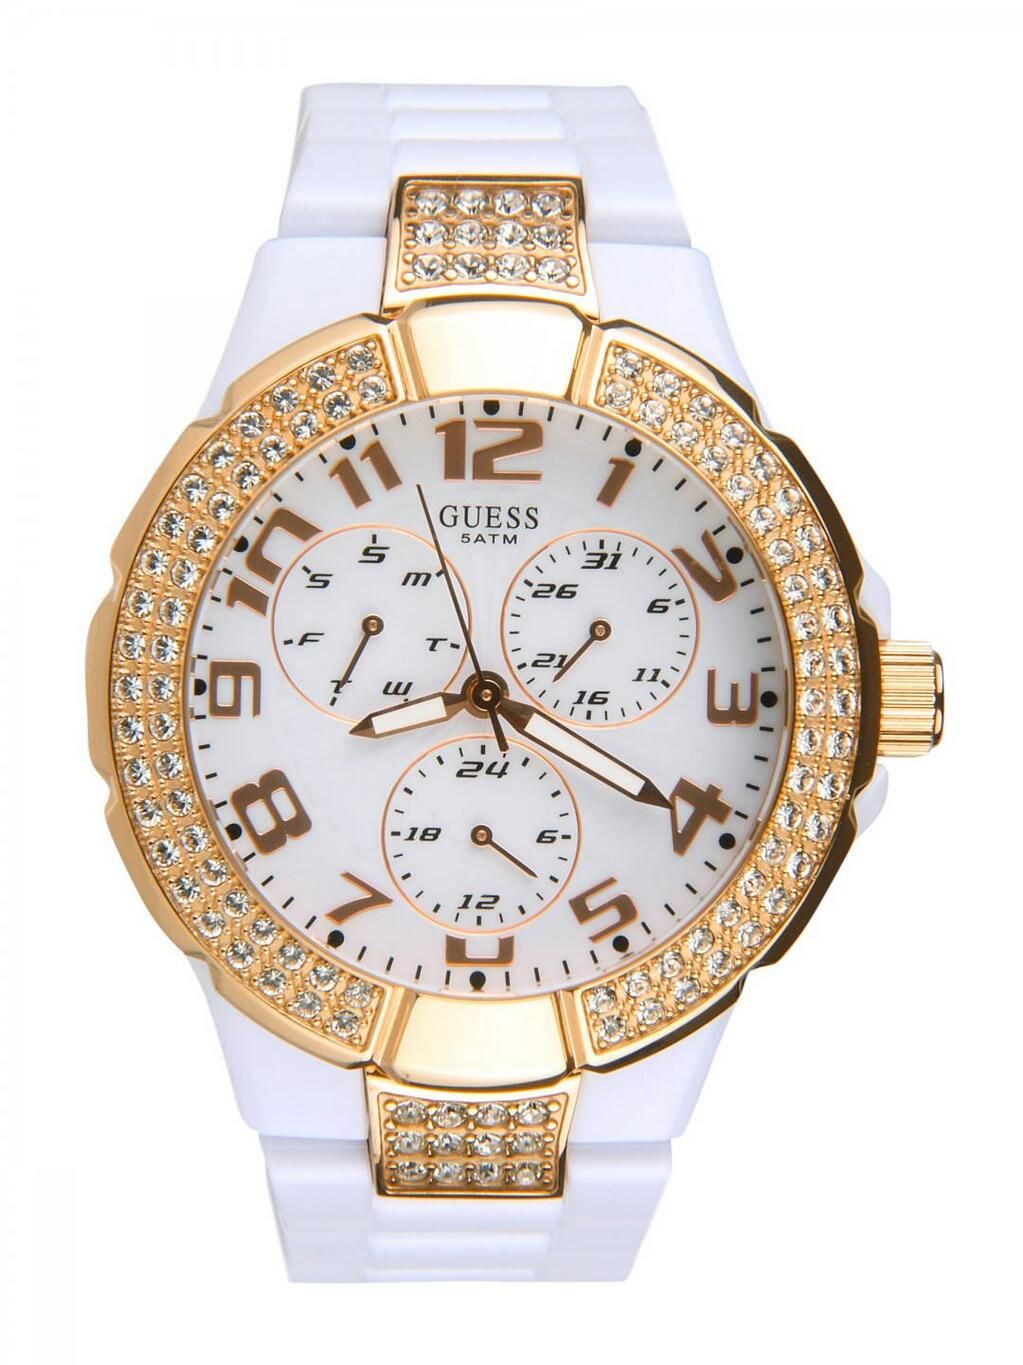 Twitter / MargaretMullina: Do you want to buy Guess watches for women? Top Choice Guess Watches Best Women Watches 2013 https://twitter.com/MargaretMullina/status/355754732058460160/photo/1